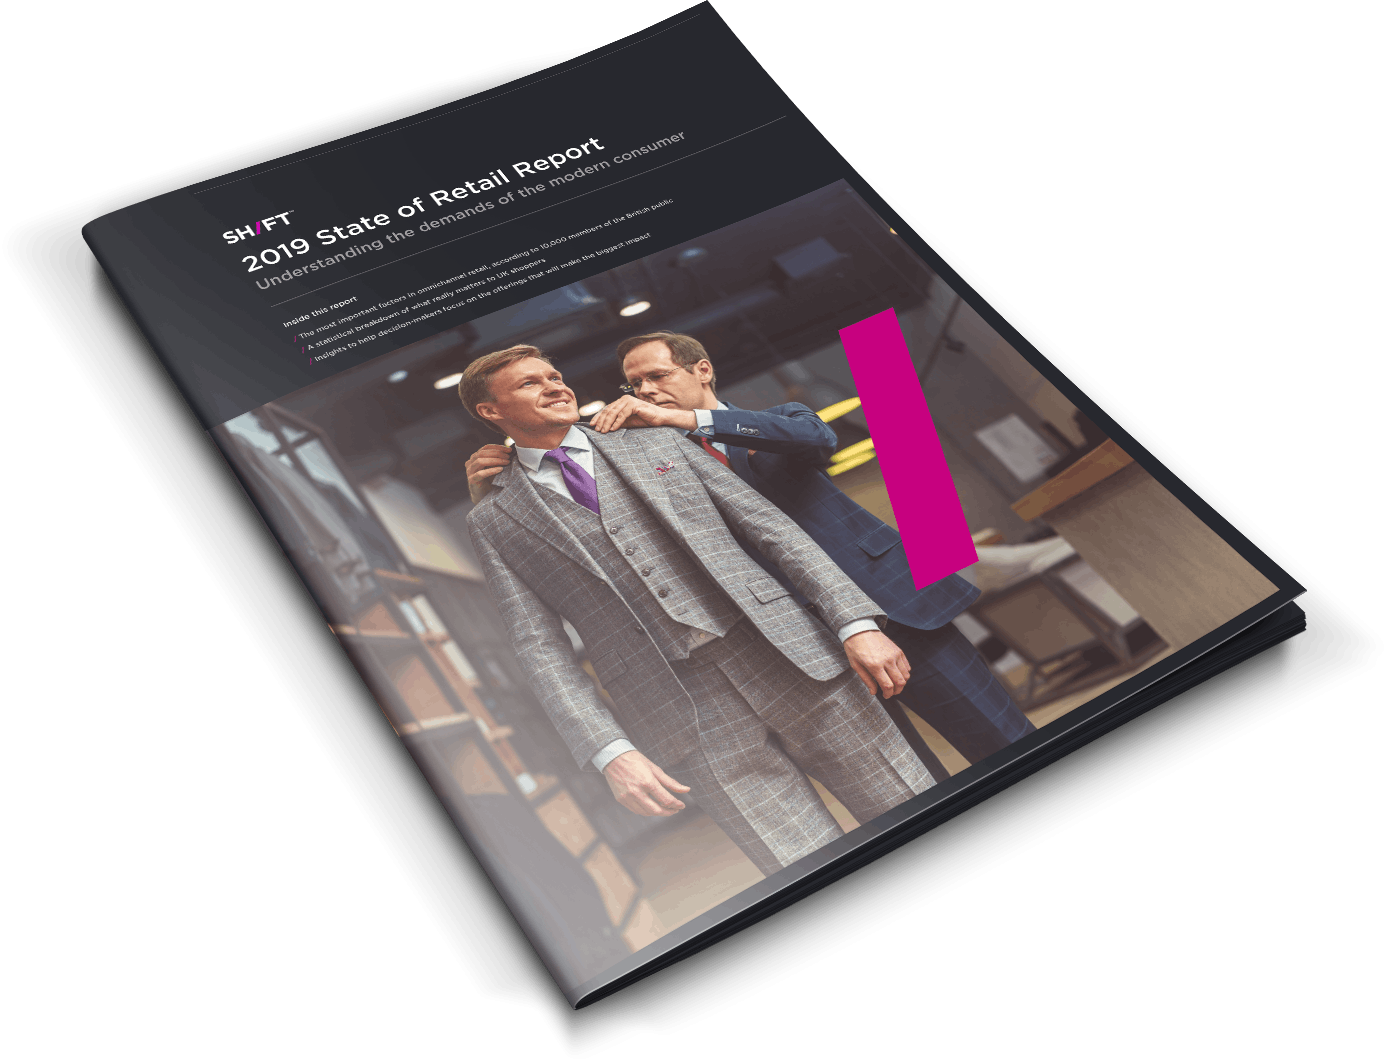 The 2019 State of Retail Report